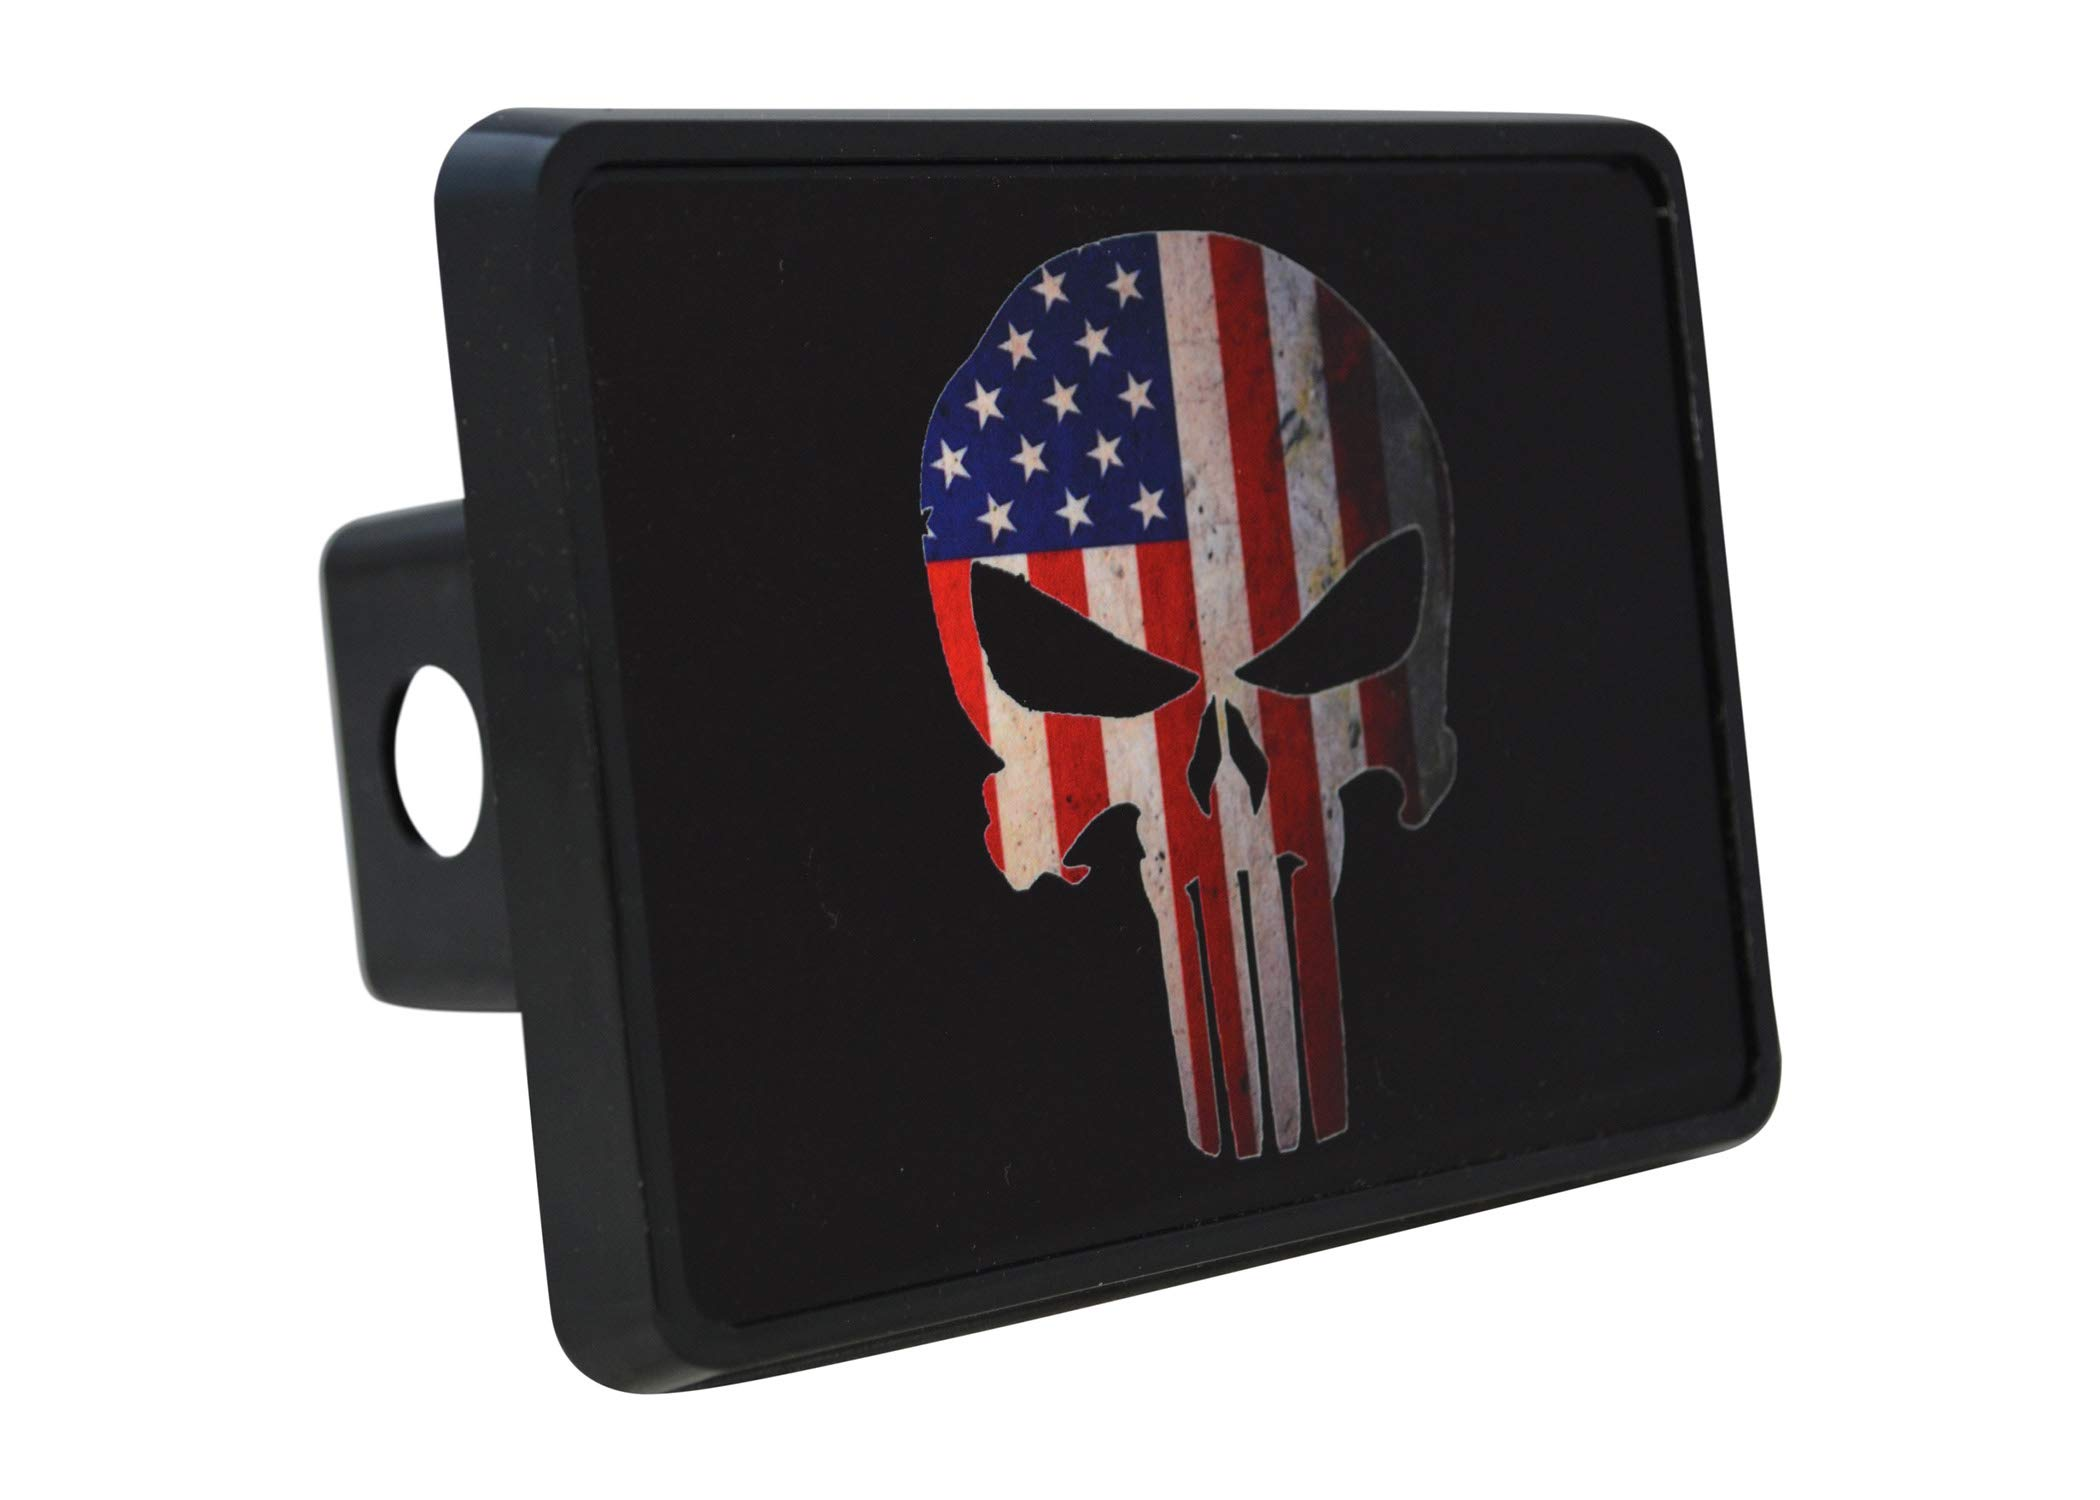 Rogue River Tactical USA American Flag Trailer Hitch Cover Plug US Patriotic Vintage Special Forces Skull by Rogue River Tactical